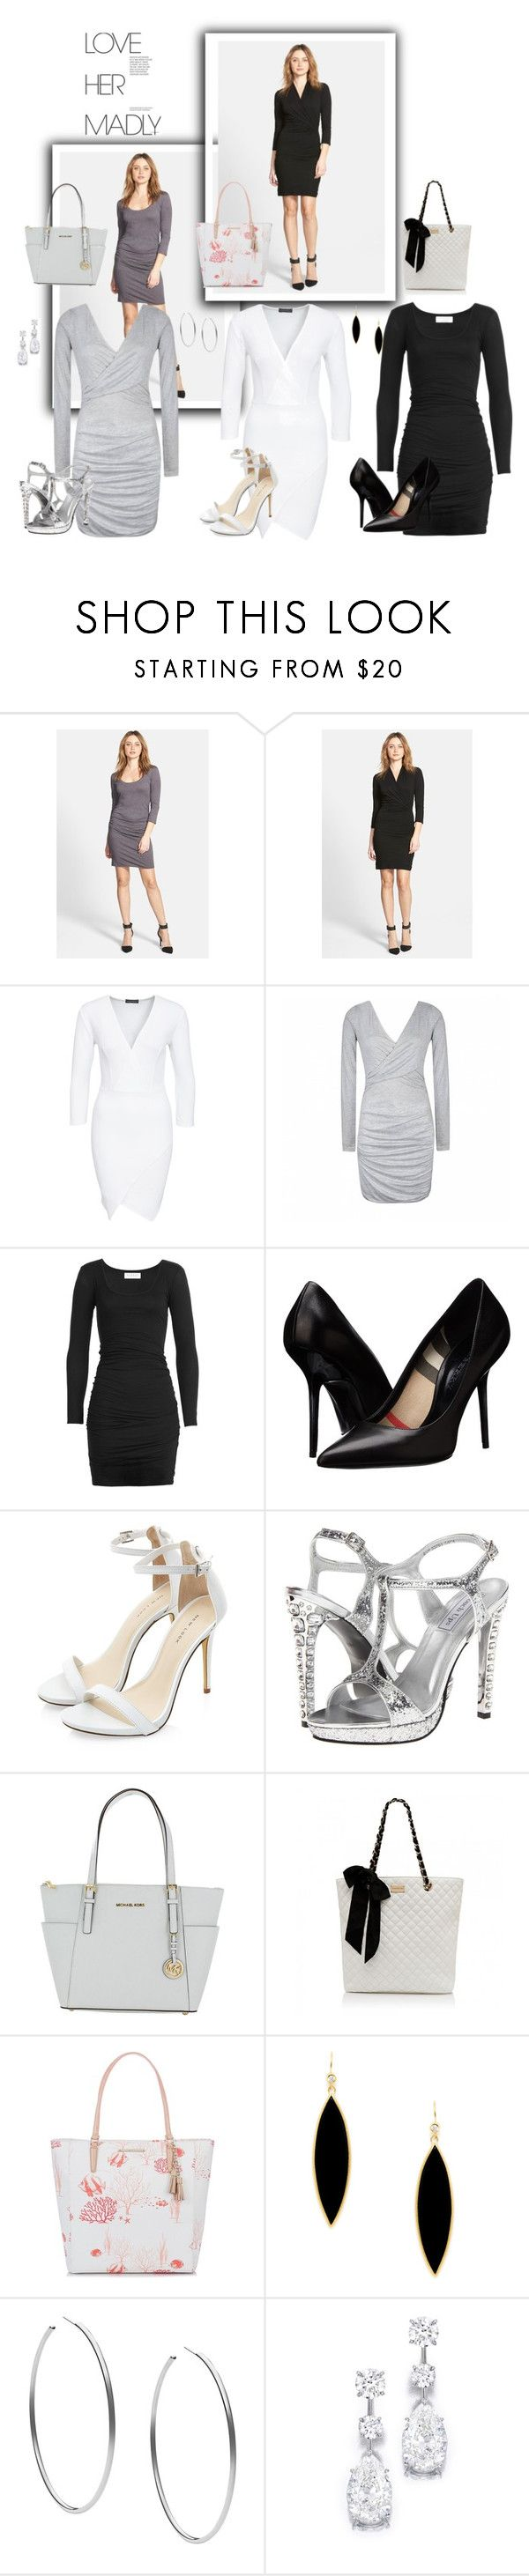 """""""Untitled #22"""" by adelaa1996 ❤ liked on Polyvore featuring Velvet by Graham & Spencer, Club L, Ally Fashion, Velvet, Burberry, Touch Ups, Michael Kors, Forever New, Brahmin and Rivka Friedman"""